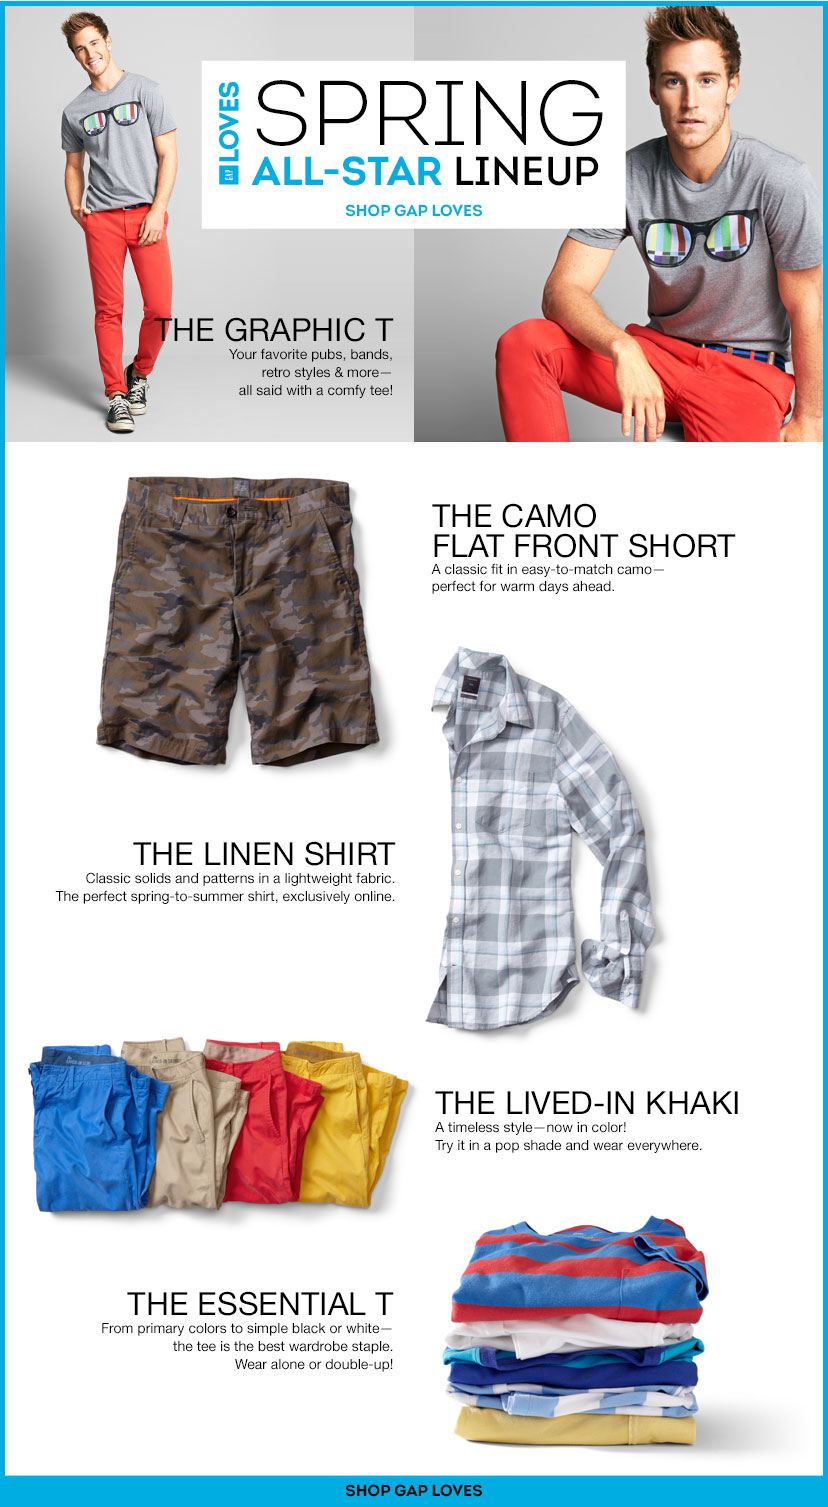 GAP LOVES | SPRING ALL-STAR LINEUP | SHOP GAP LOVES | THE GRAPHIC T | THE CAMO FLAT FRONT SHORT | THE LINEN SHIRT | THE LIVED-IN KHAKI | THE ESSENTIAL T | SHOP GAP LOVES